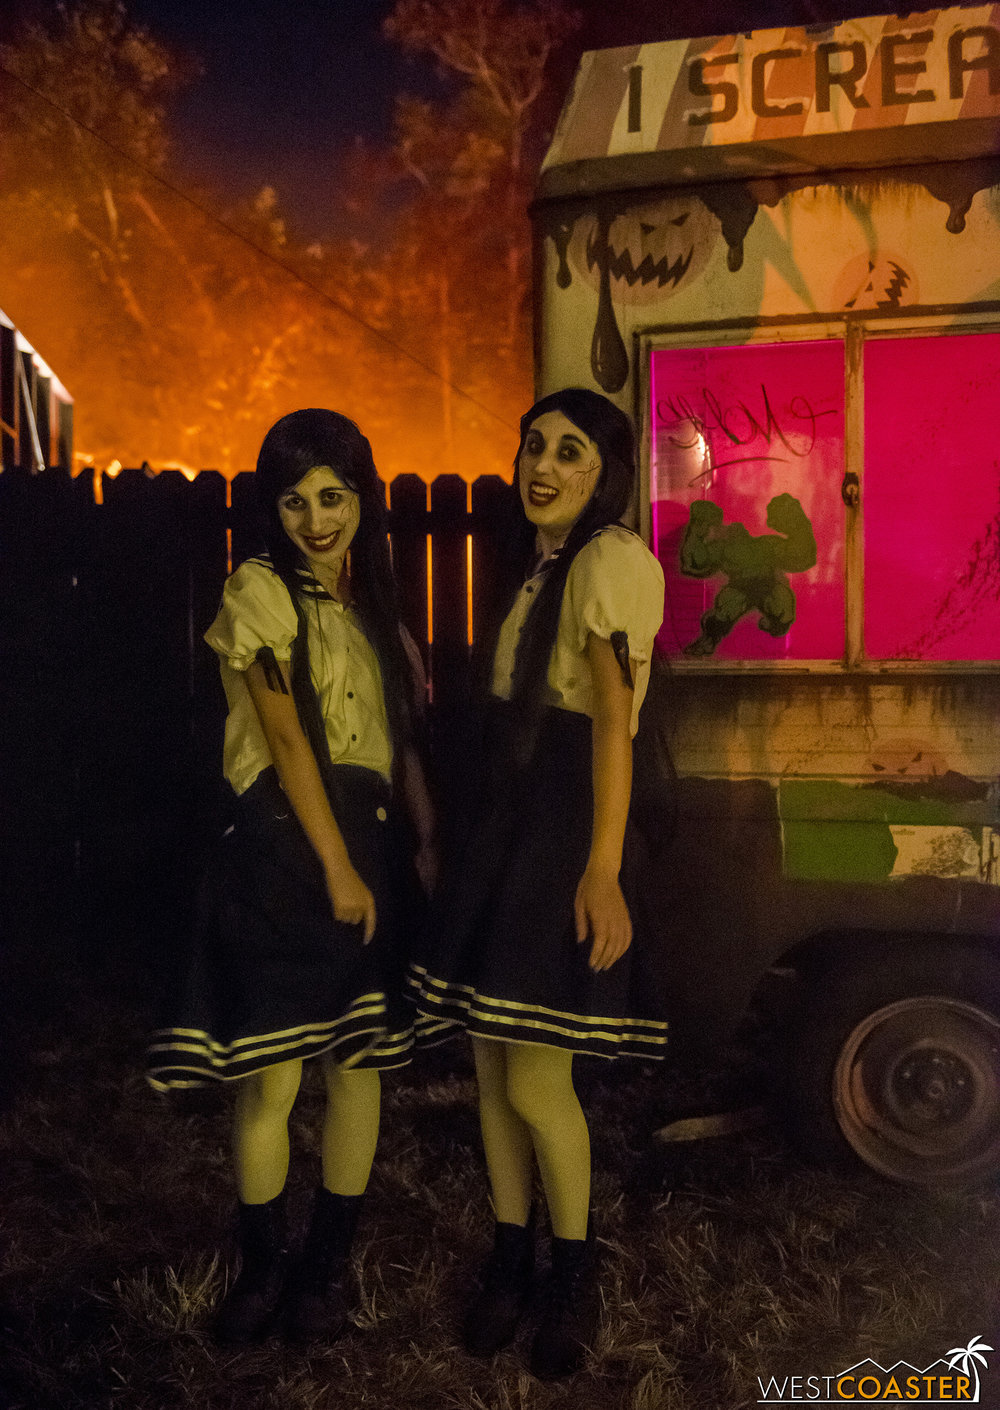 These twins just want to play murderous games.  Will you indulge?